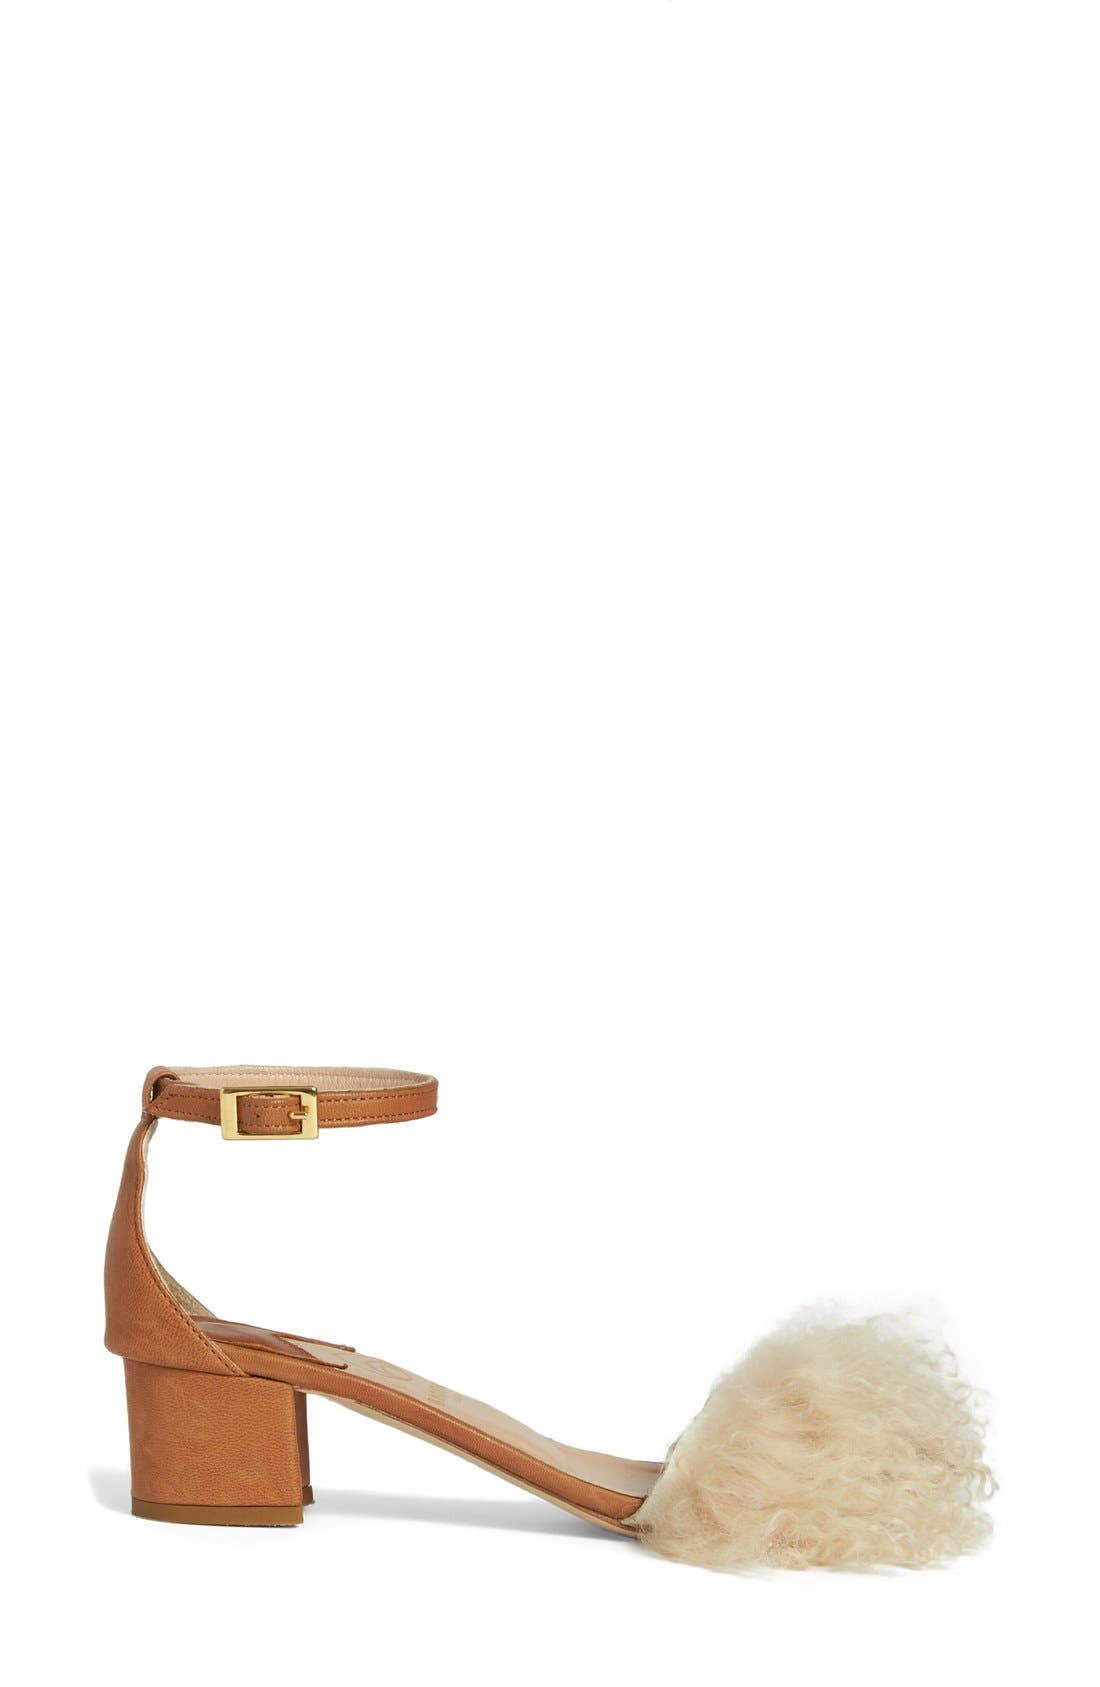 Tufted Dhara Genuine Shearling Ankle Strap Sandal,                             Alternate thumbnail 3, color,                             270